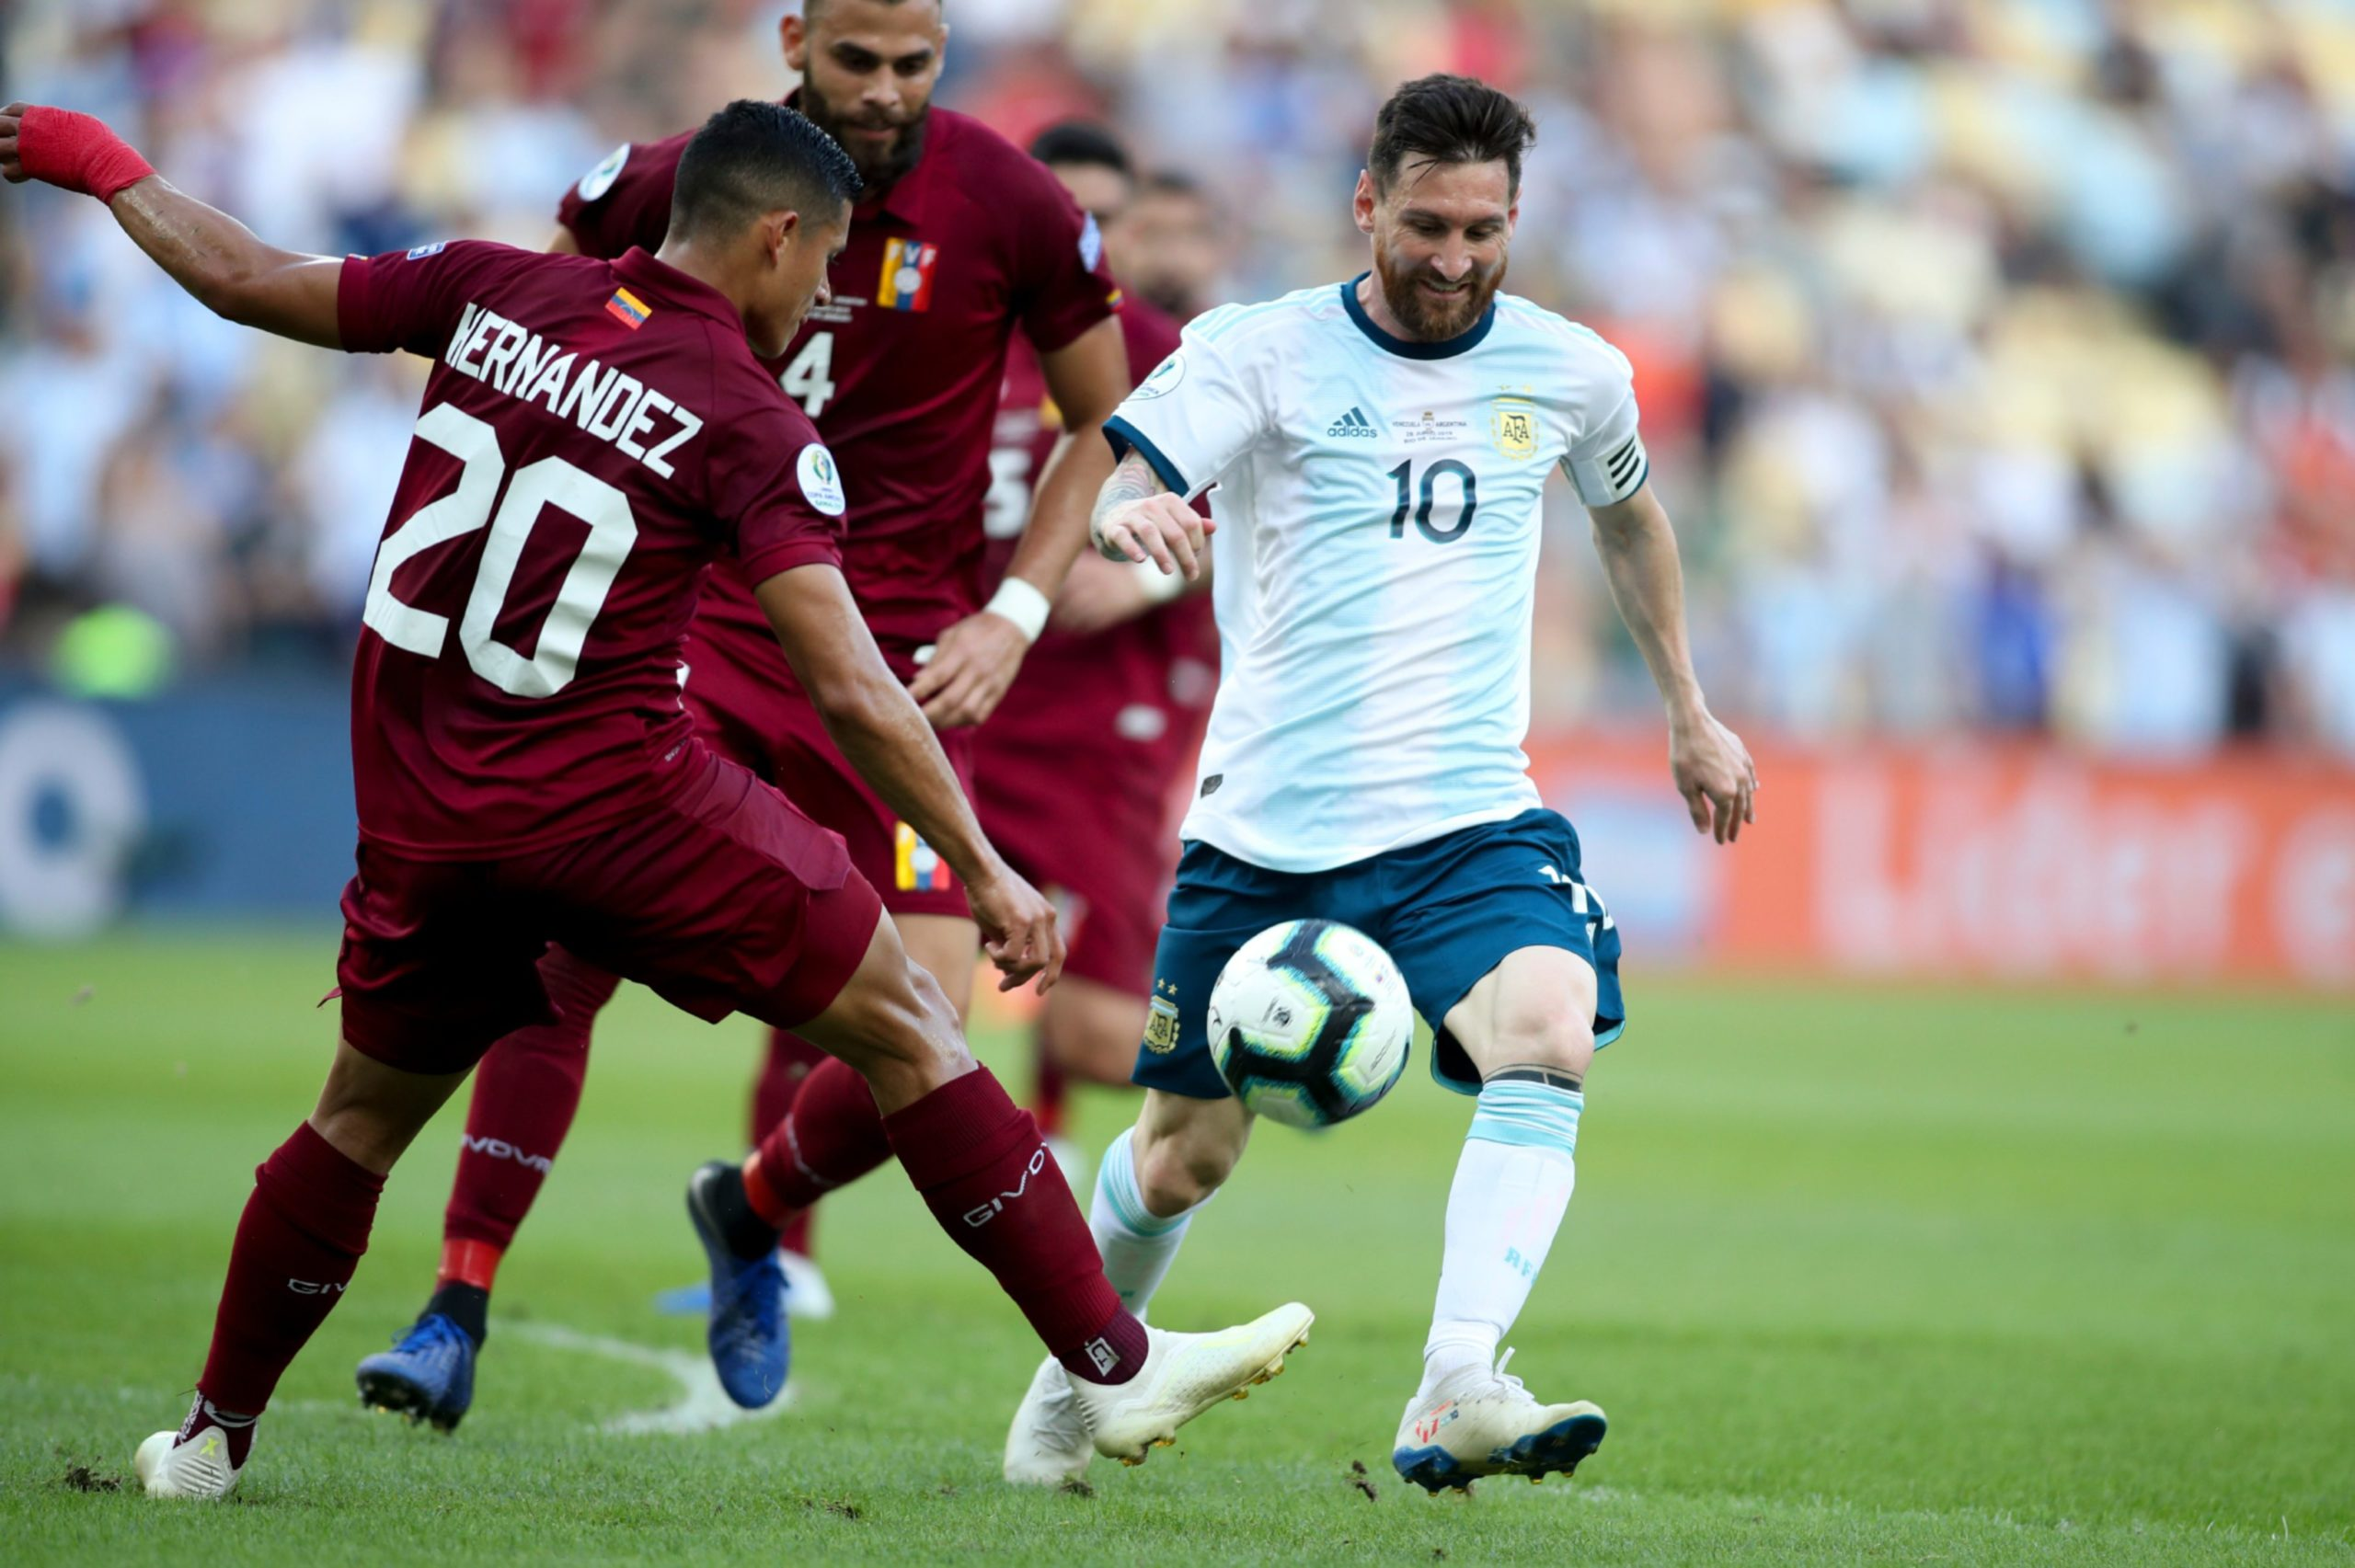 Argentina's Lionel Messi, right, and Venezuela's Ronald Hernandez vie for the ball during the 2019 Copa America quarter-final at Rio de Janeiro's Maracana.